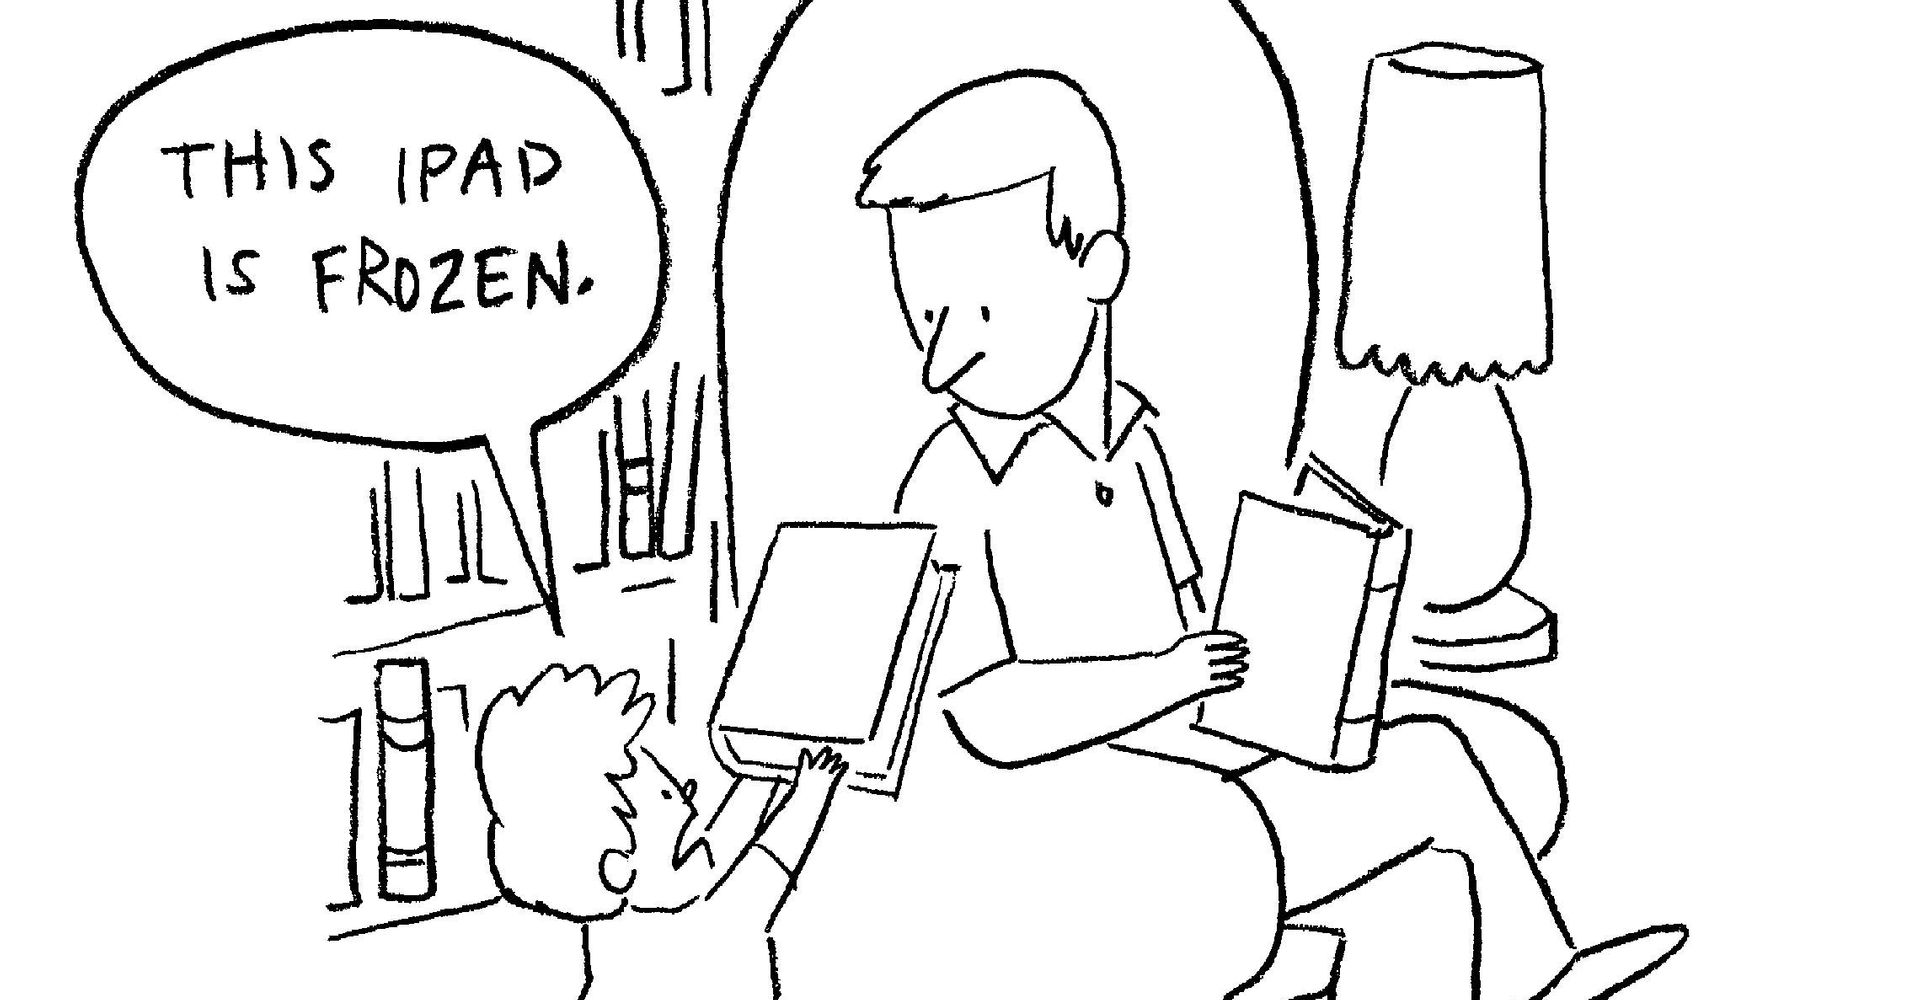 11 Comics About Kids' Plugged-In Lives To Make You Laugh